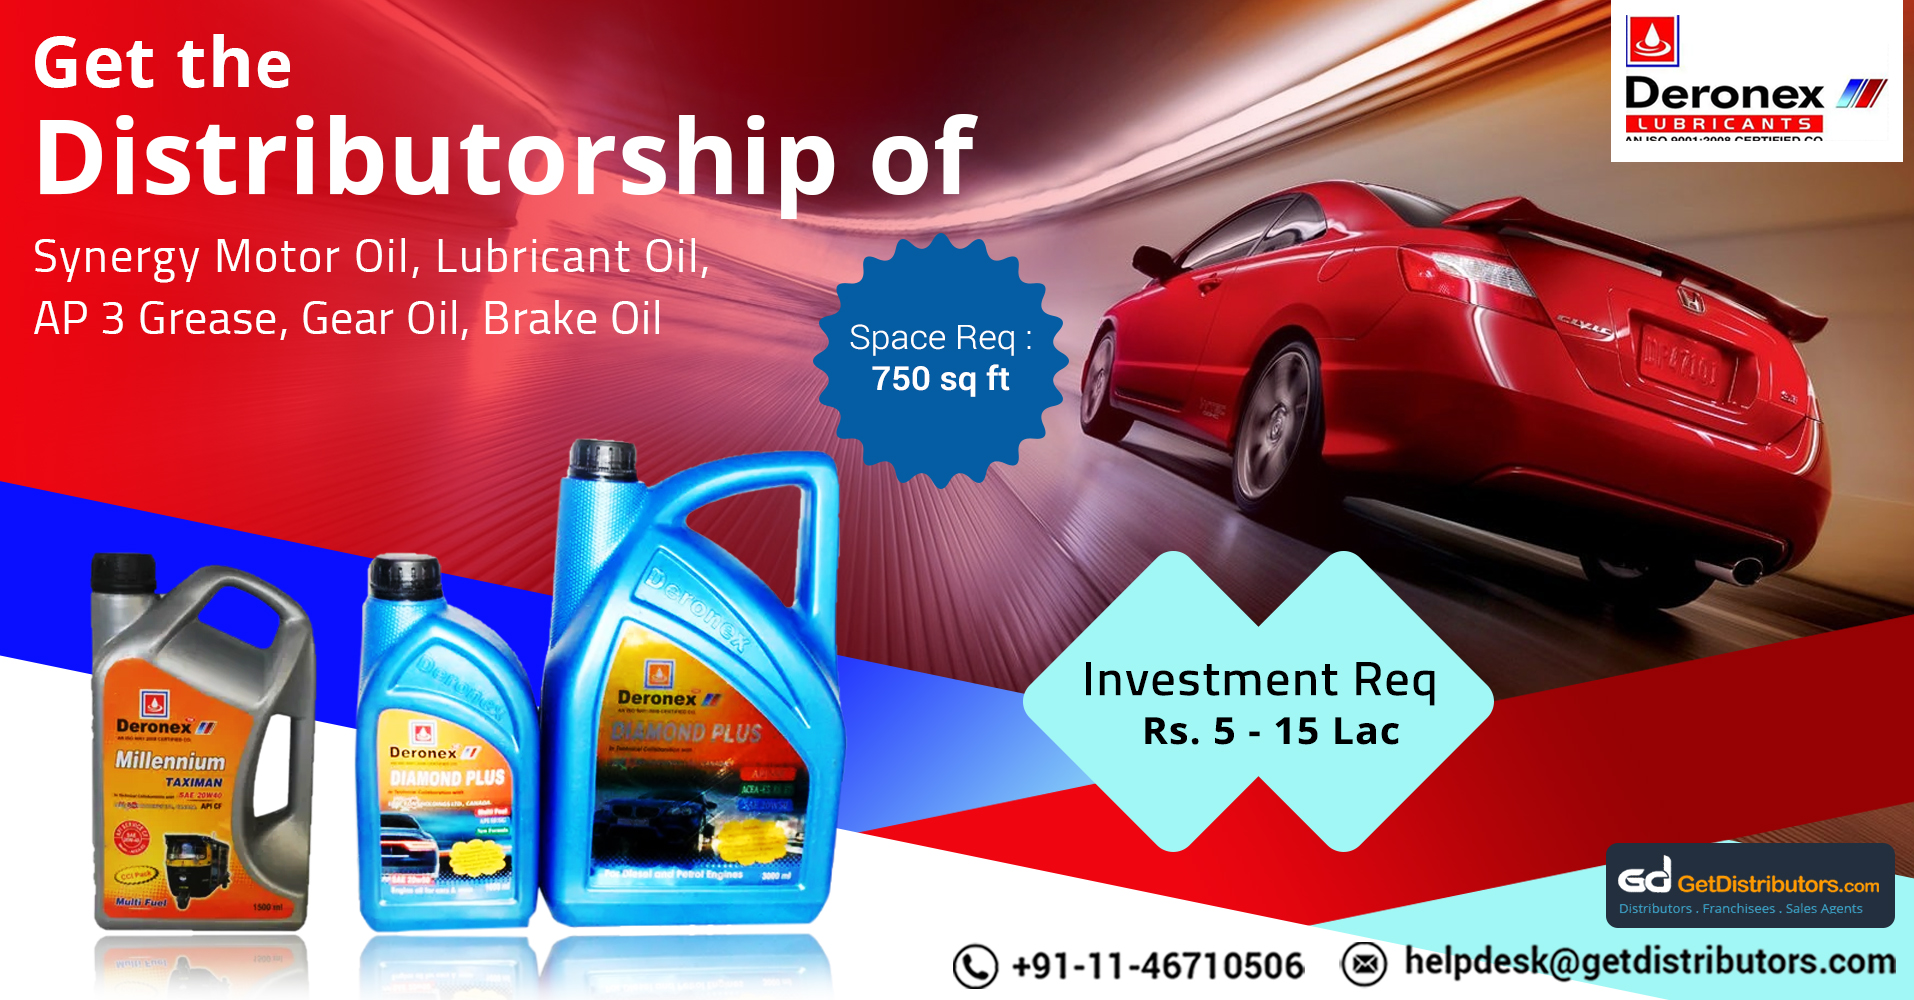 Good Quality Lubricants And Oils For Machines And Vehicles